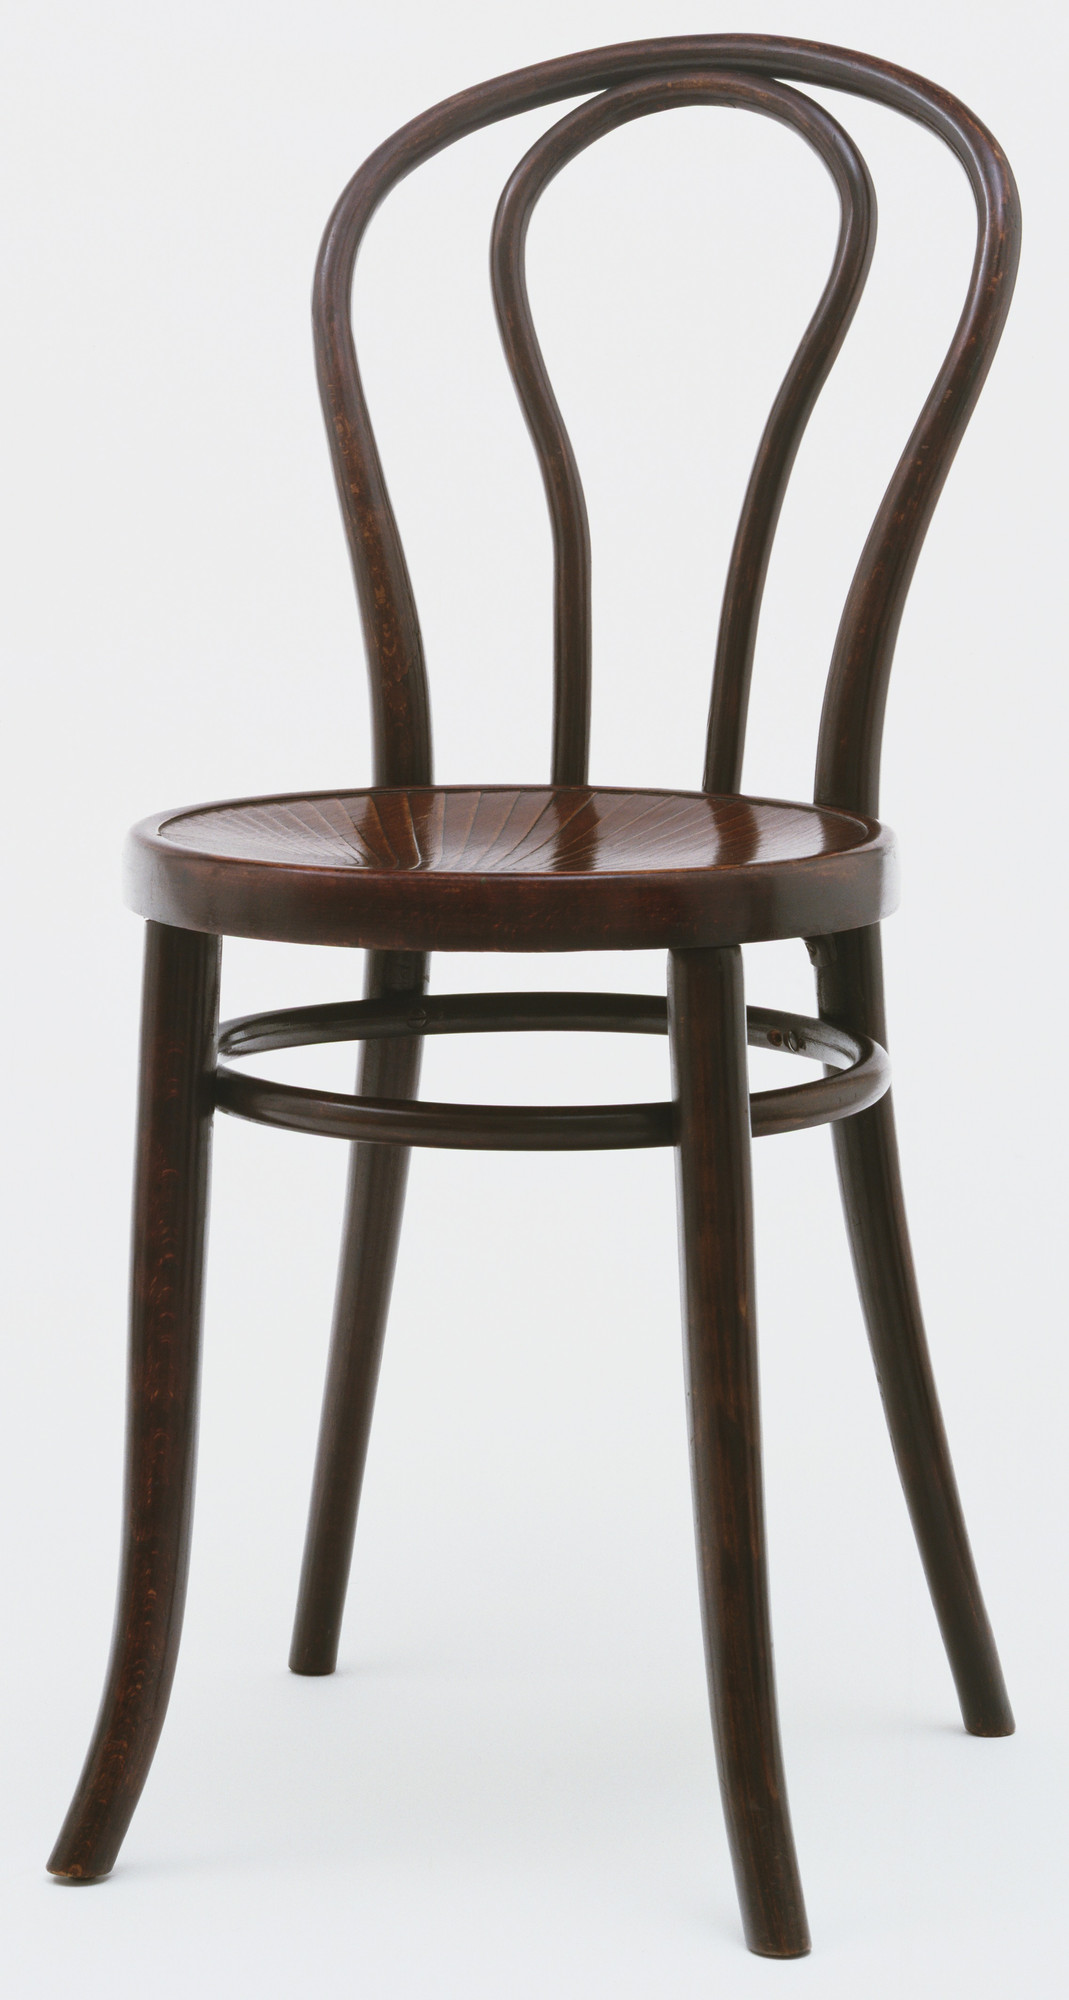 Gebrüder Thonet, company design. Vienna Café Chair (no. 18). 1876